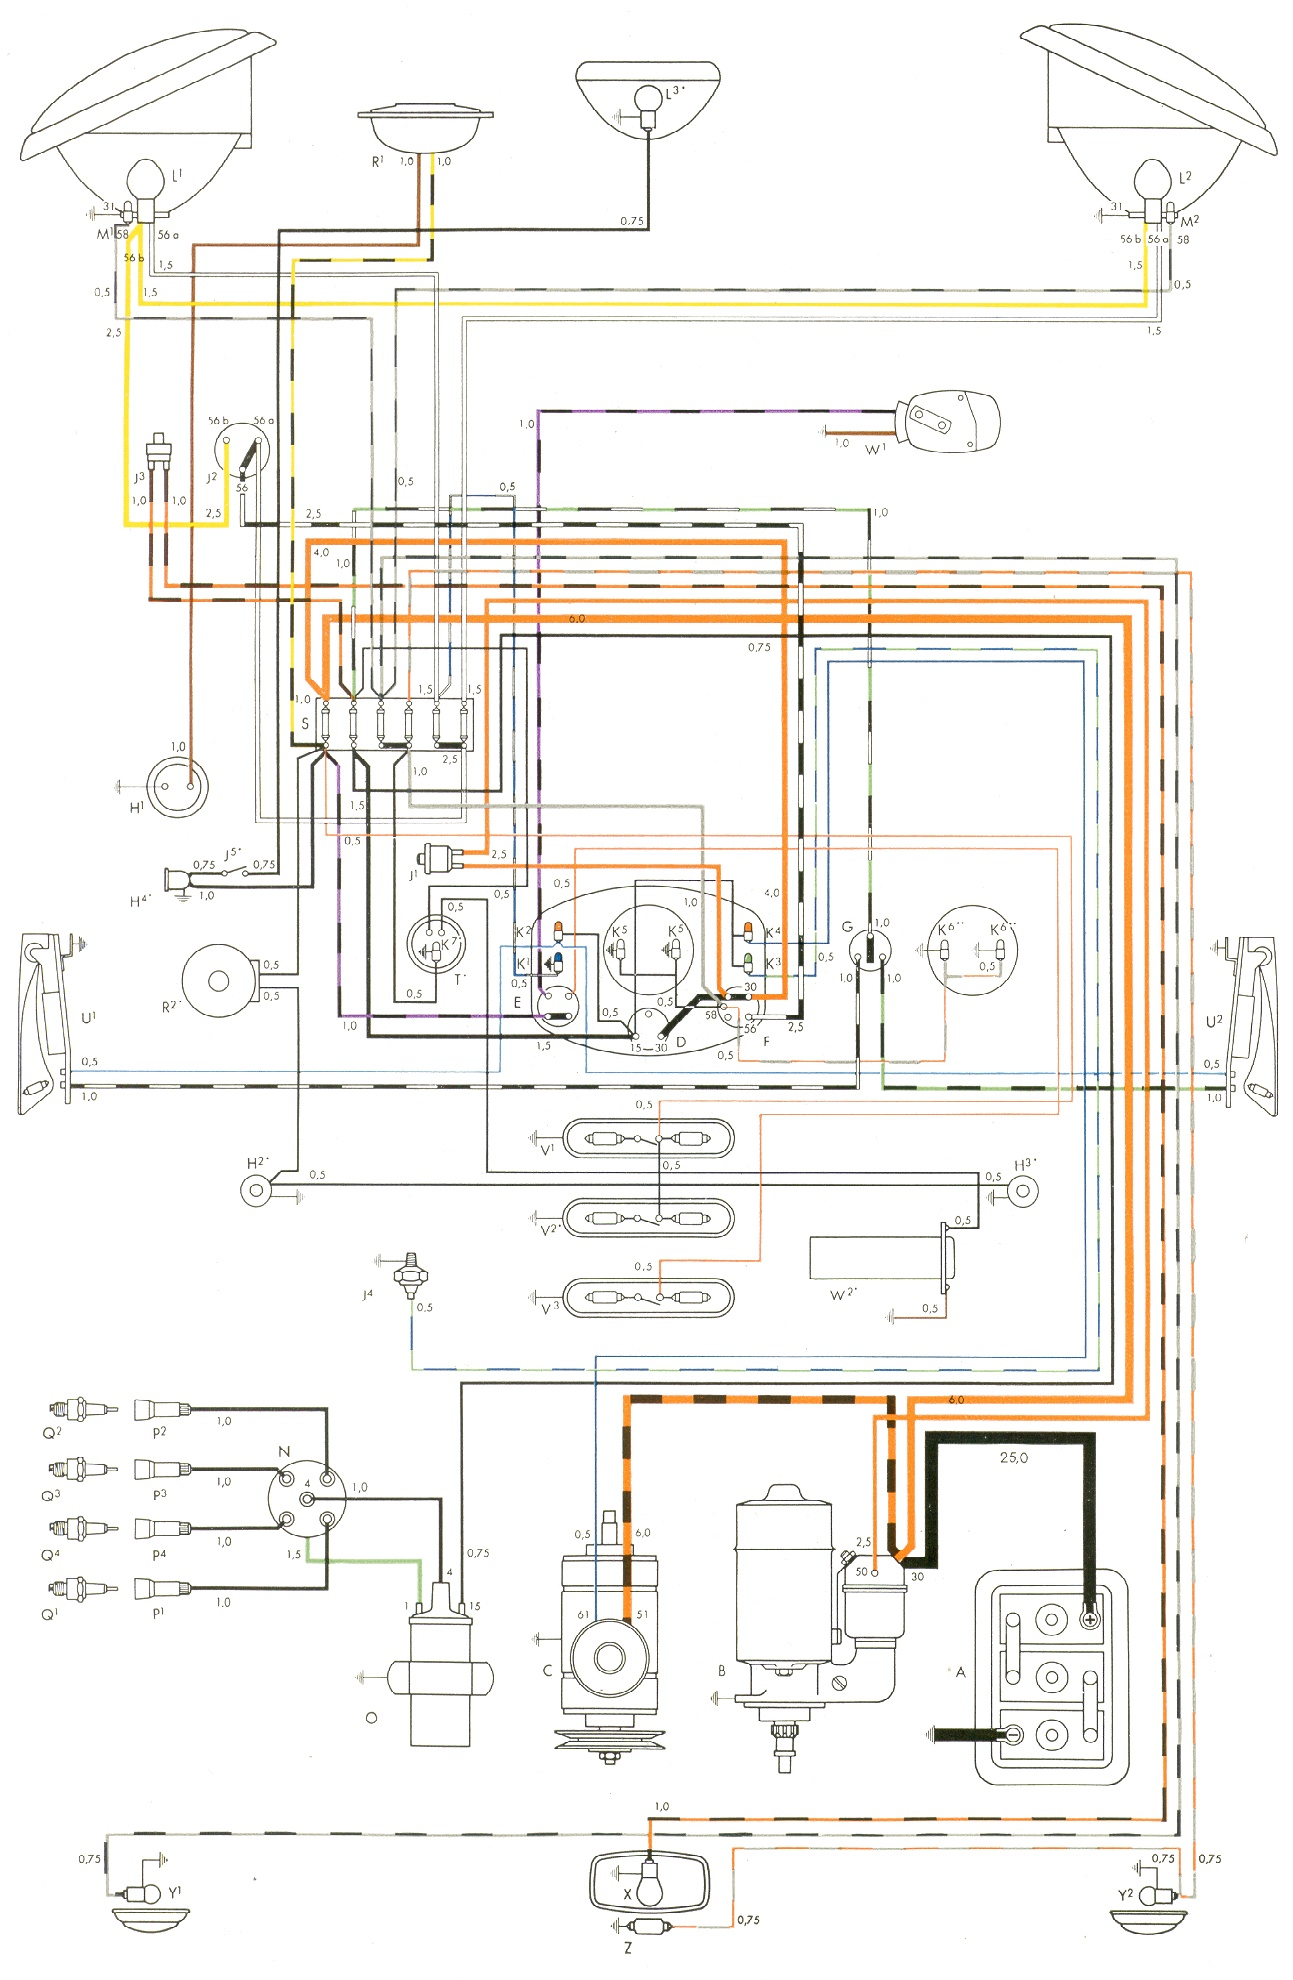 Whelen Cencom Wiring Diagram Get Free Image About Wiring Diagram